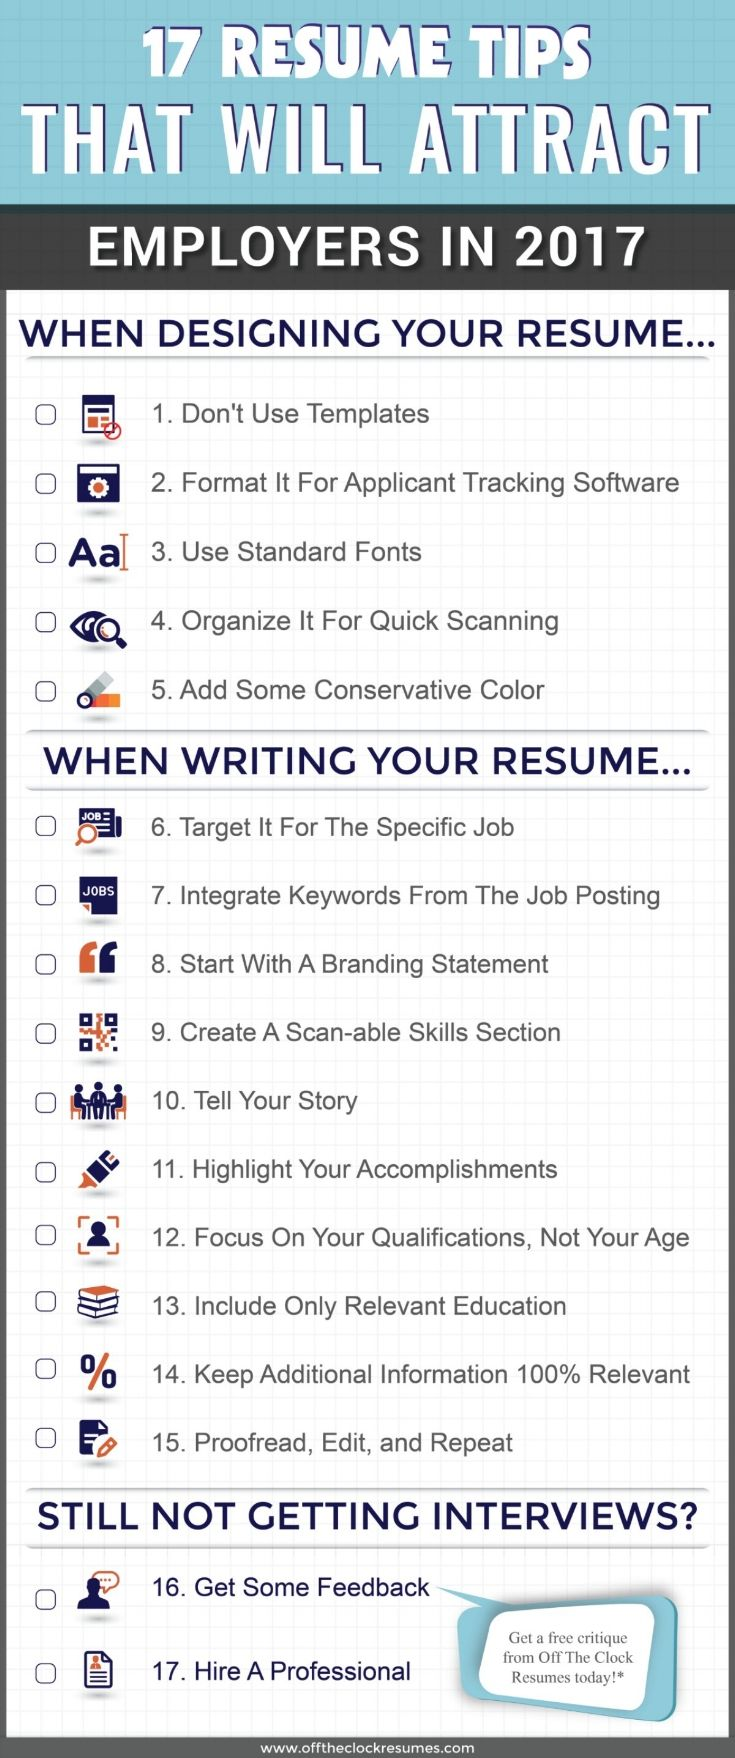 20 Resume Tips That Will Get You More Interviews In 2020 Resume Writing Cover Letter For Resume Job Career